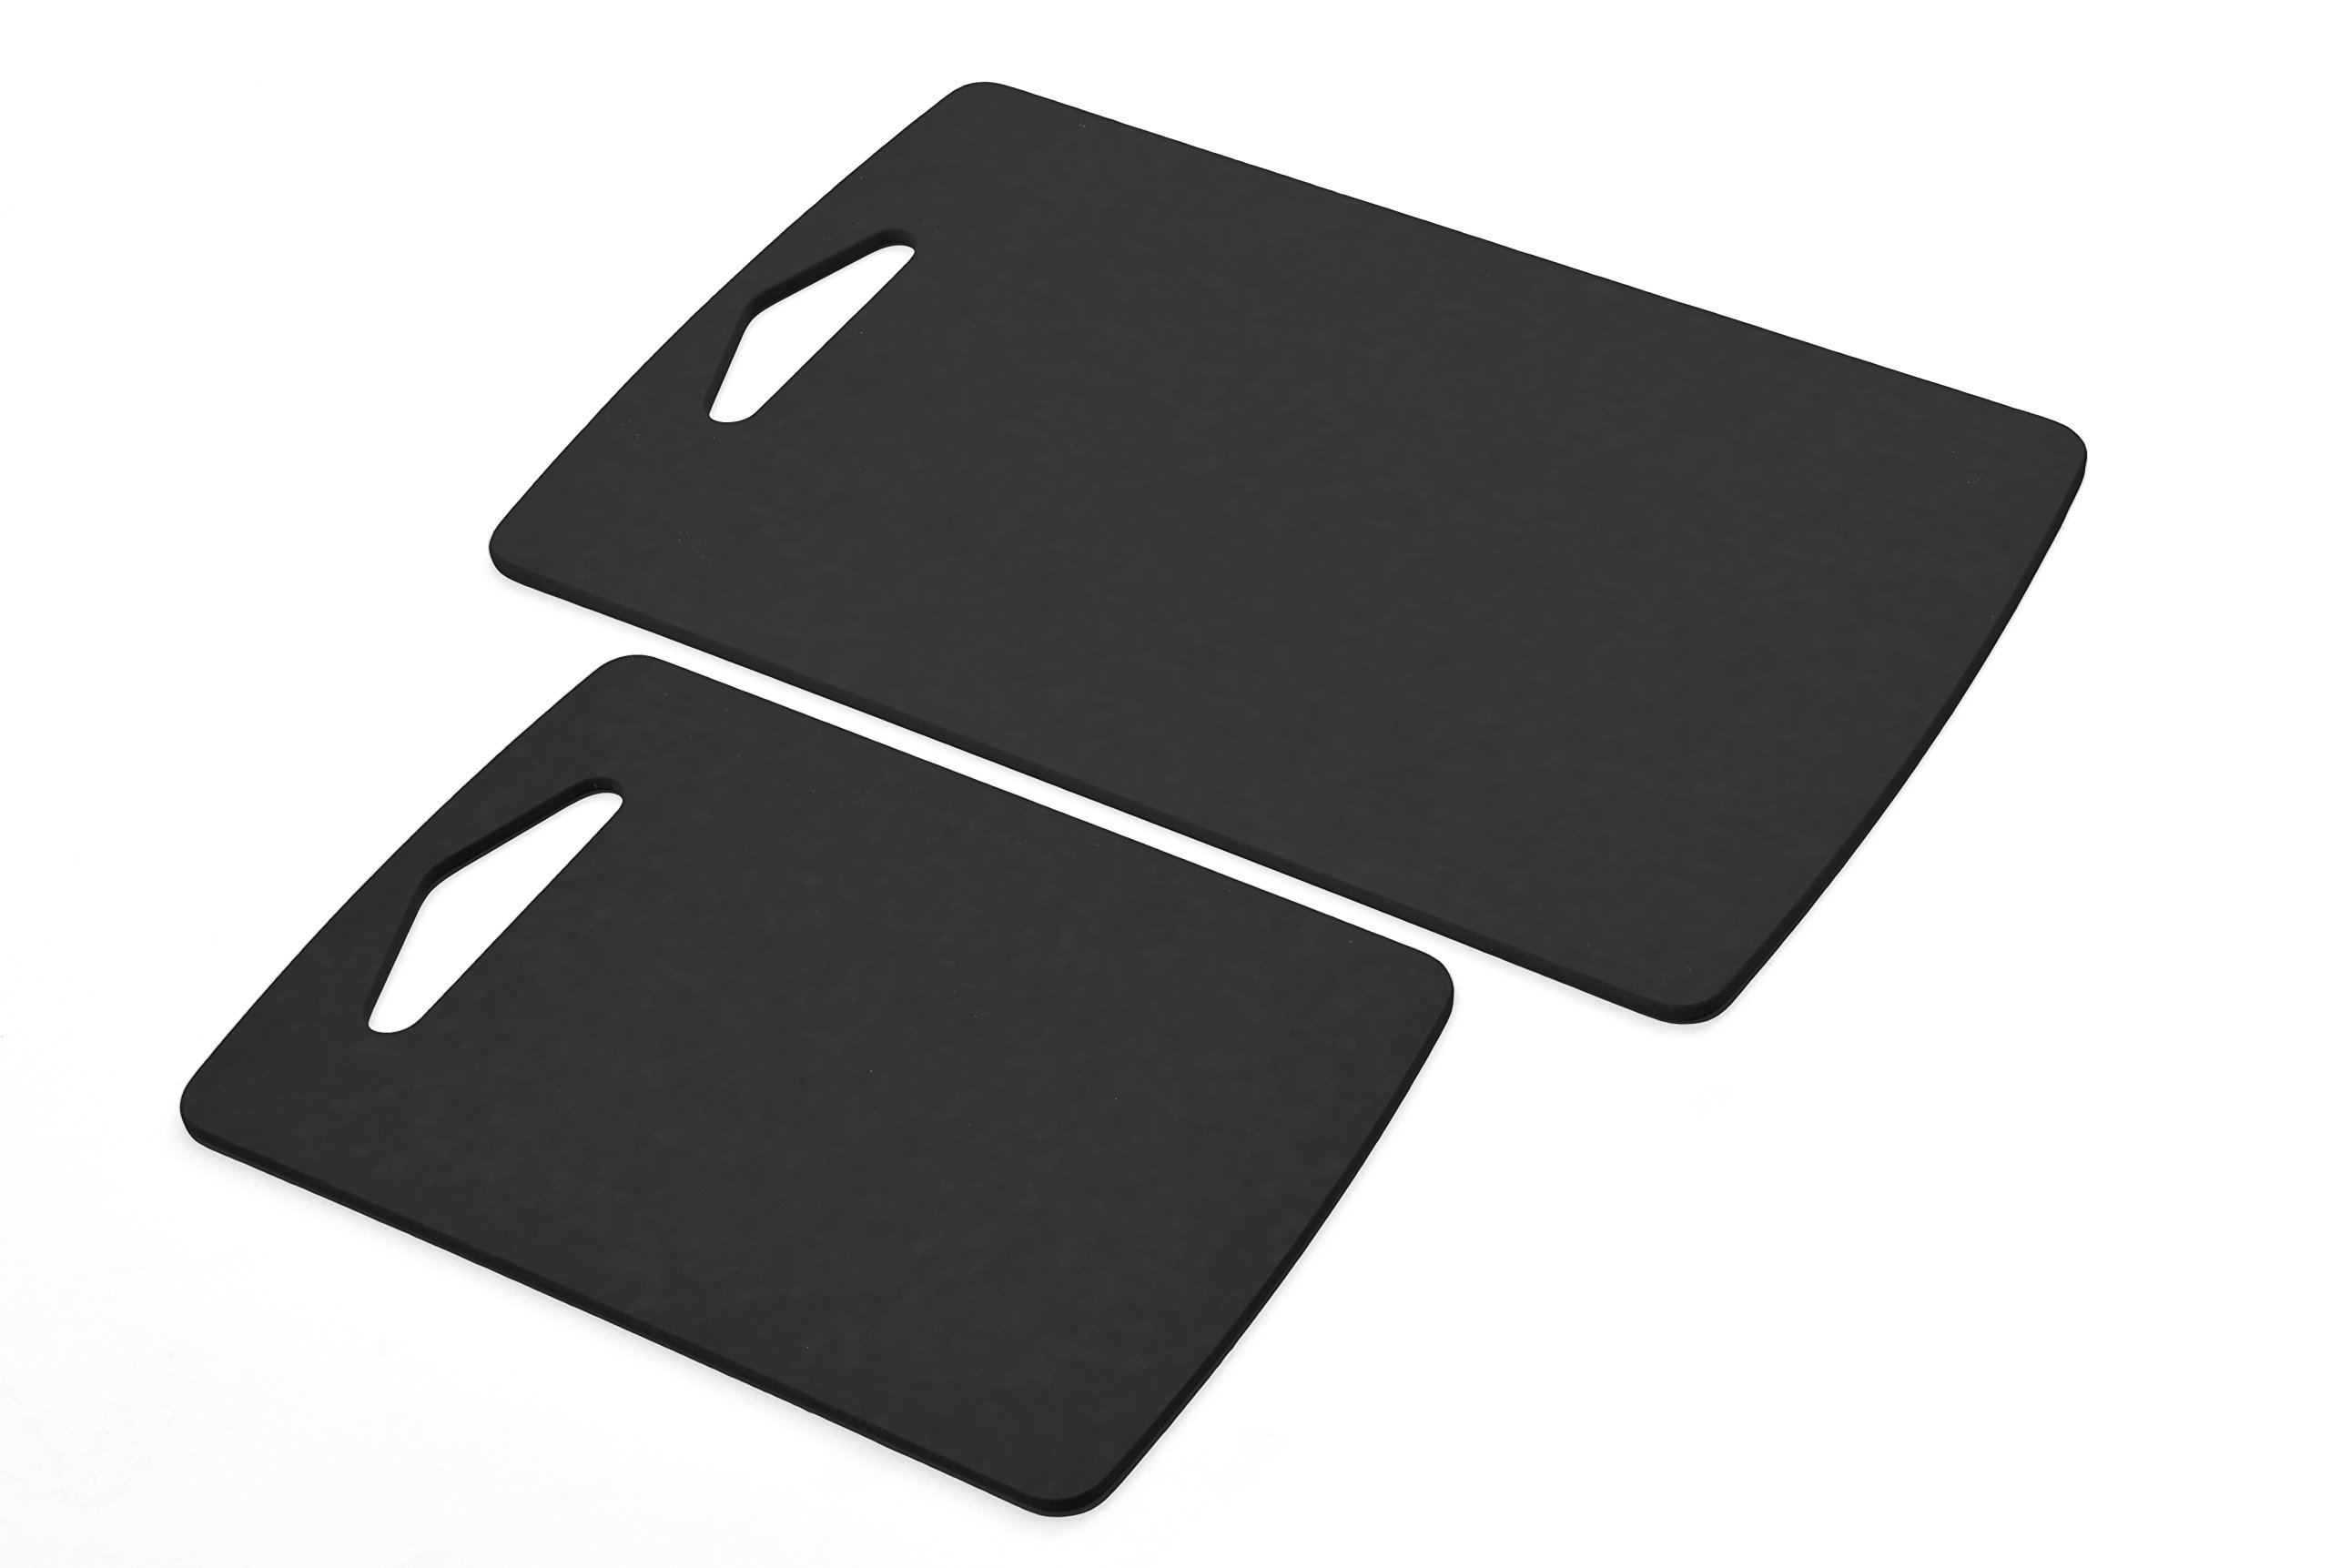 Prep Series Cutting Boards By Epicurean, 2 Piece Set, Slate